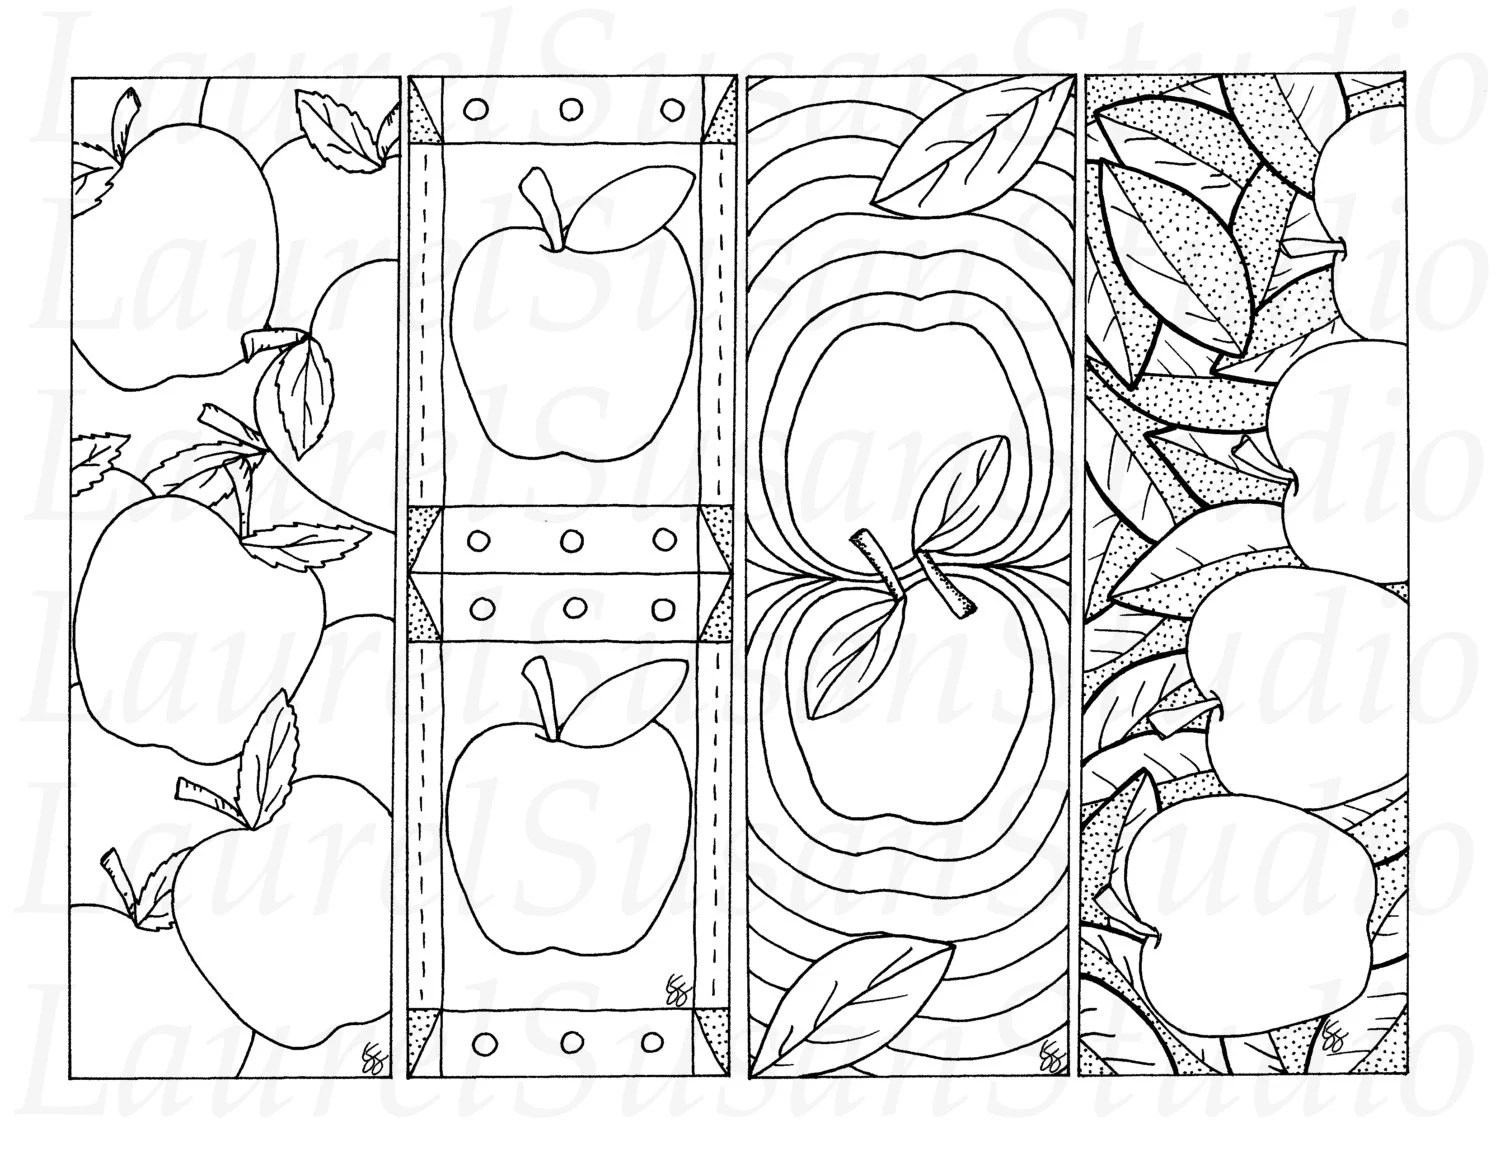 Items similar to Apple Bookmarks, Back to School Printable